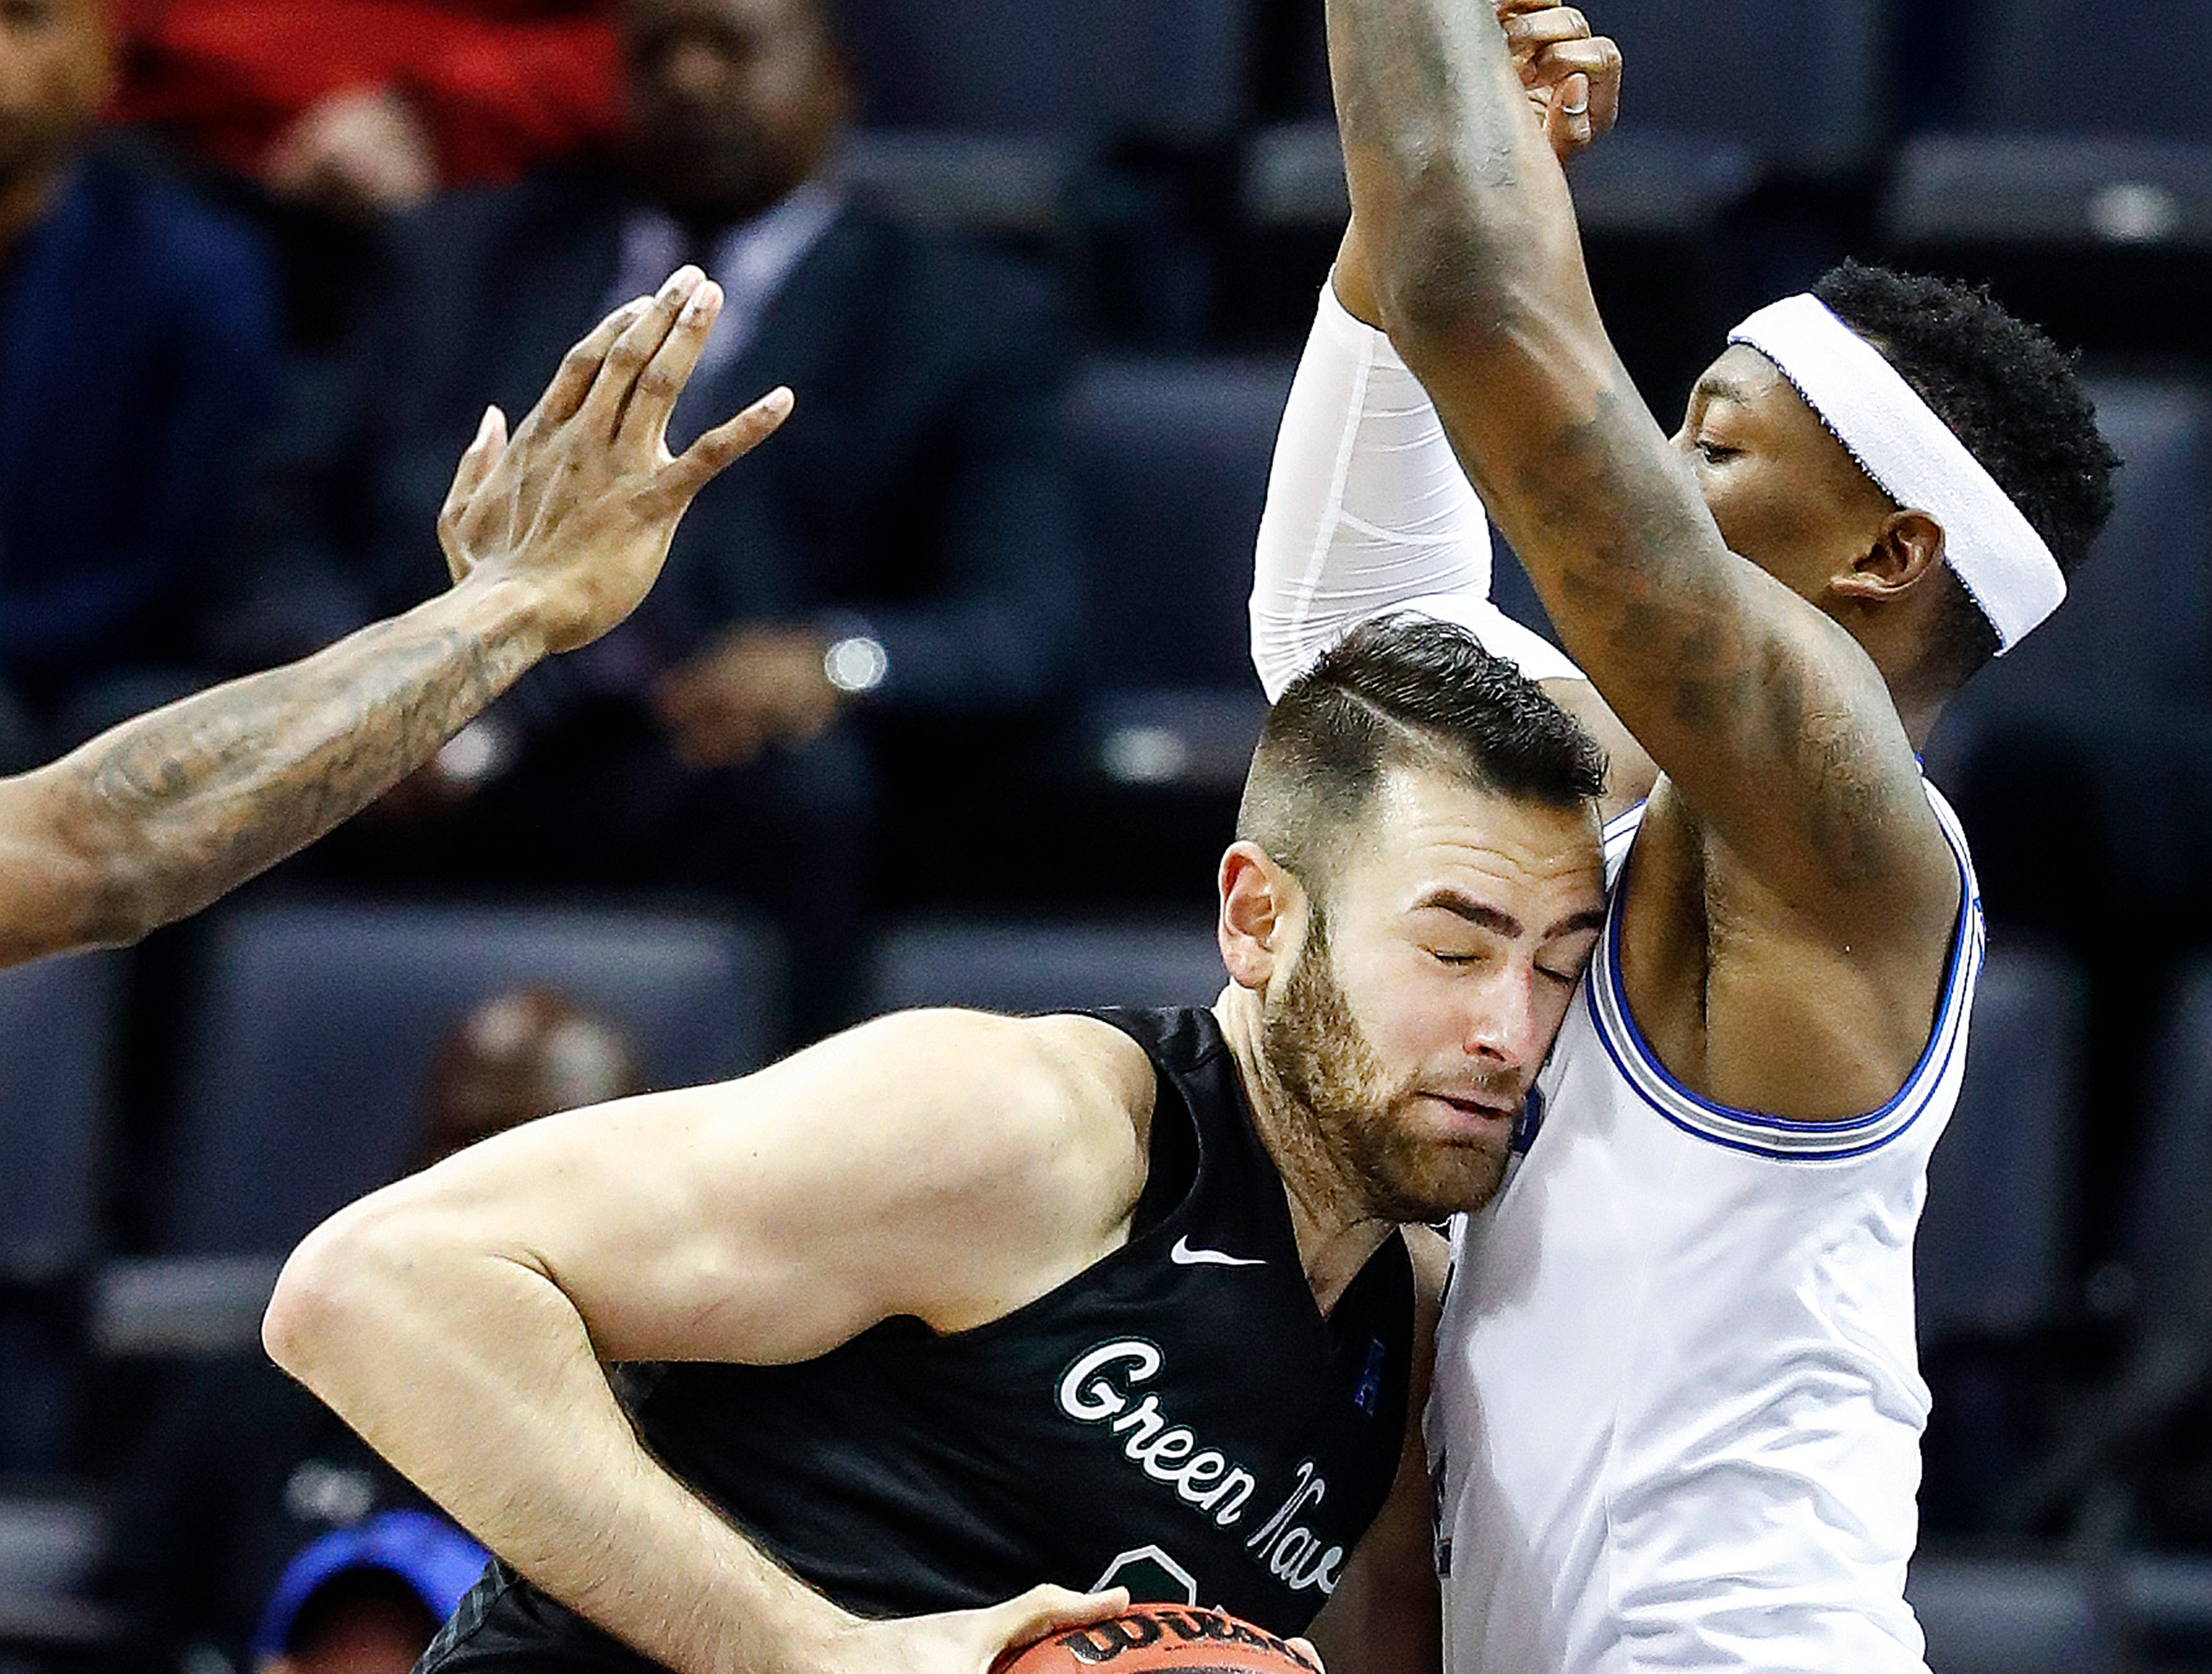 Memphis defender Kyvon Davenport (right) applies pressure to Tulane forward Samir Sehic (left) during action of their first round AAC Tournament game at the  FedExForum, Thursday, March 14, 2019.